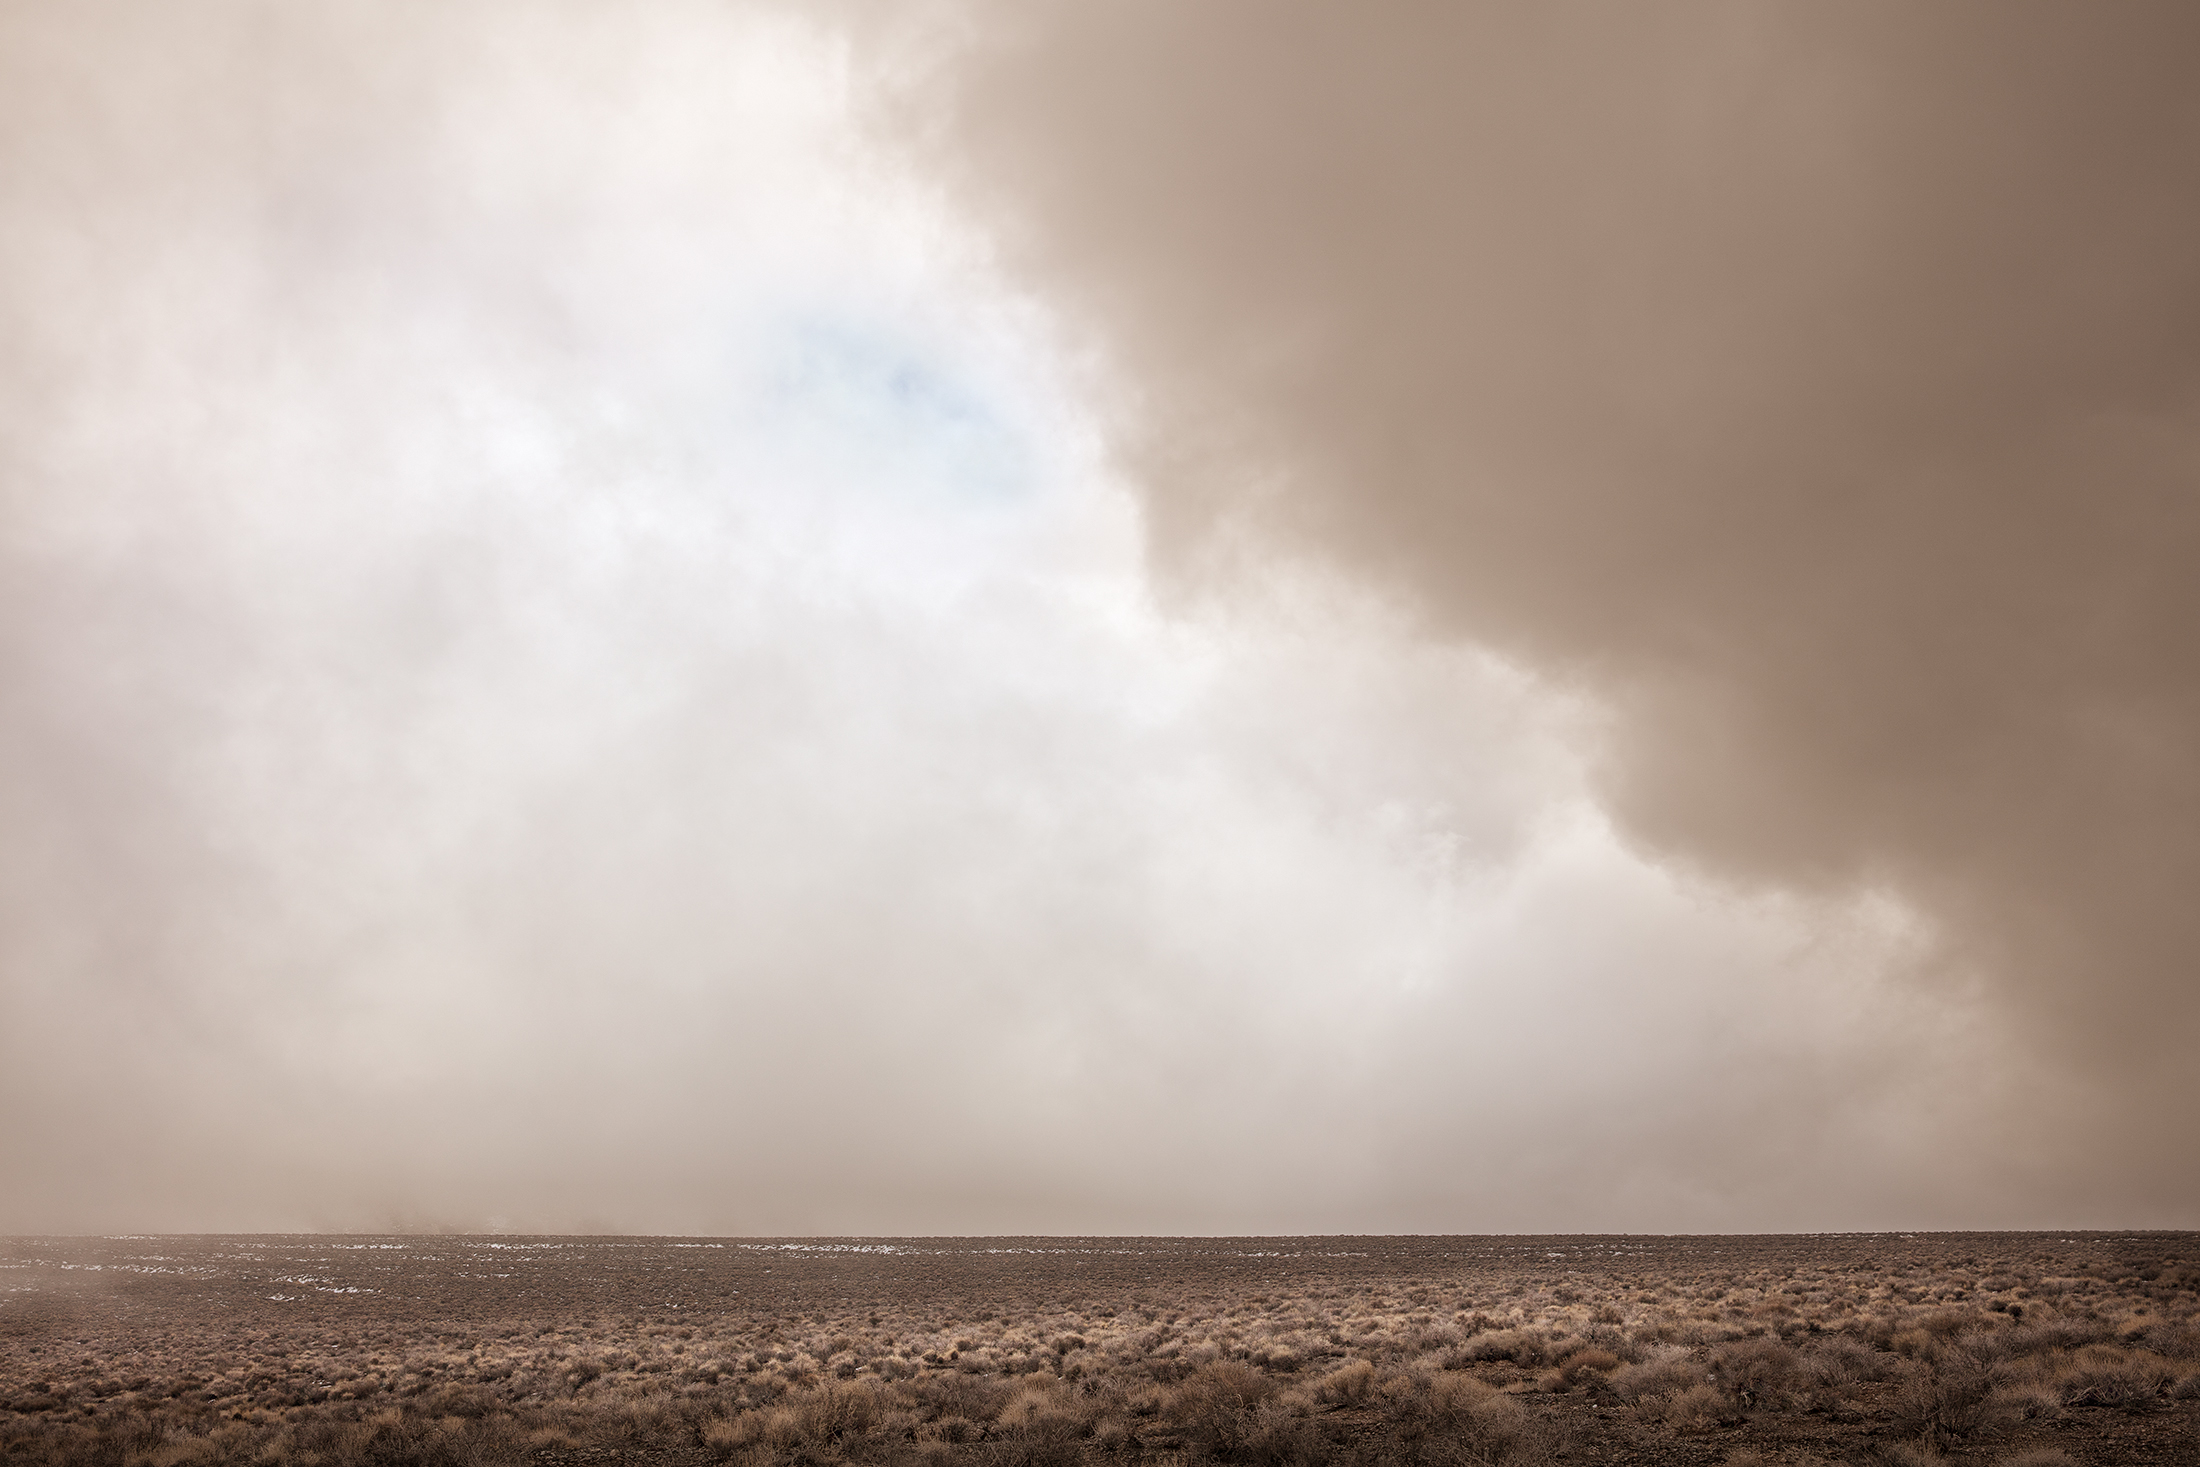 2) Infinity Series #5683, Death Valley. Photograph, 32X48 inches, 2018.